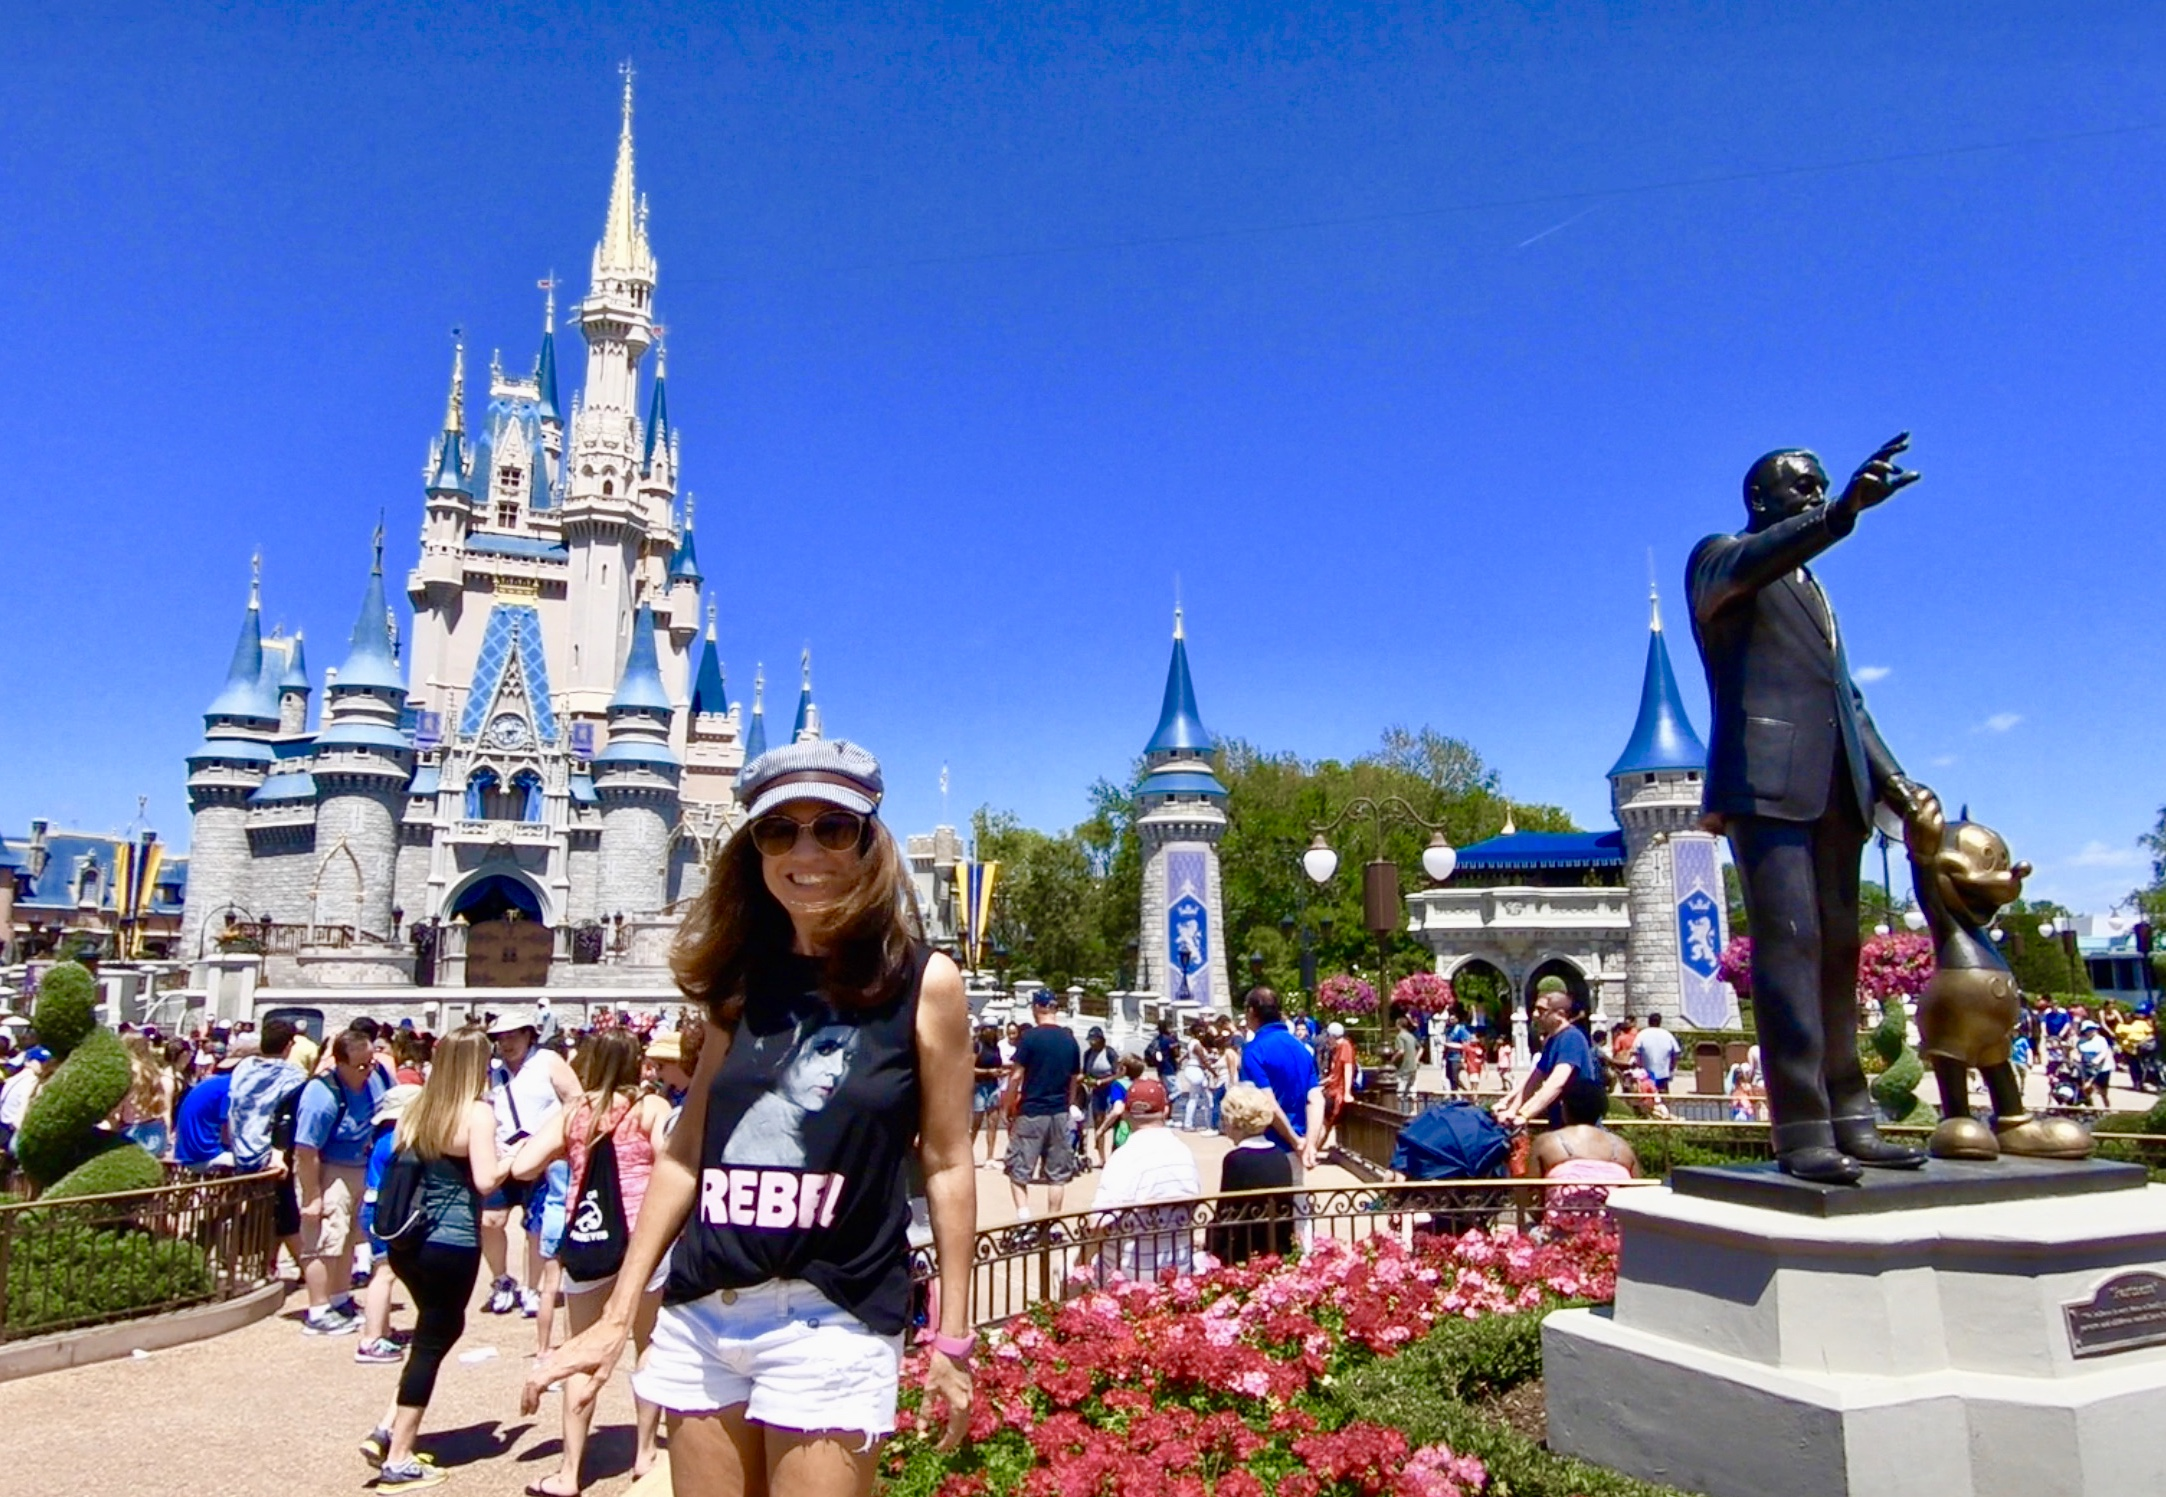 Overview. Featuring four exciting theme parks, two water parks, an entertainment complex and much more in Orlando, Florida, Walt Disney World® Resort is a world-renowned attraction themed around classic Disney fairytales and newly popular Disney stories.